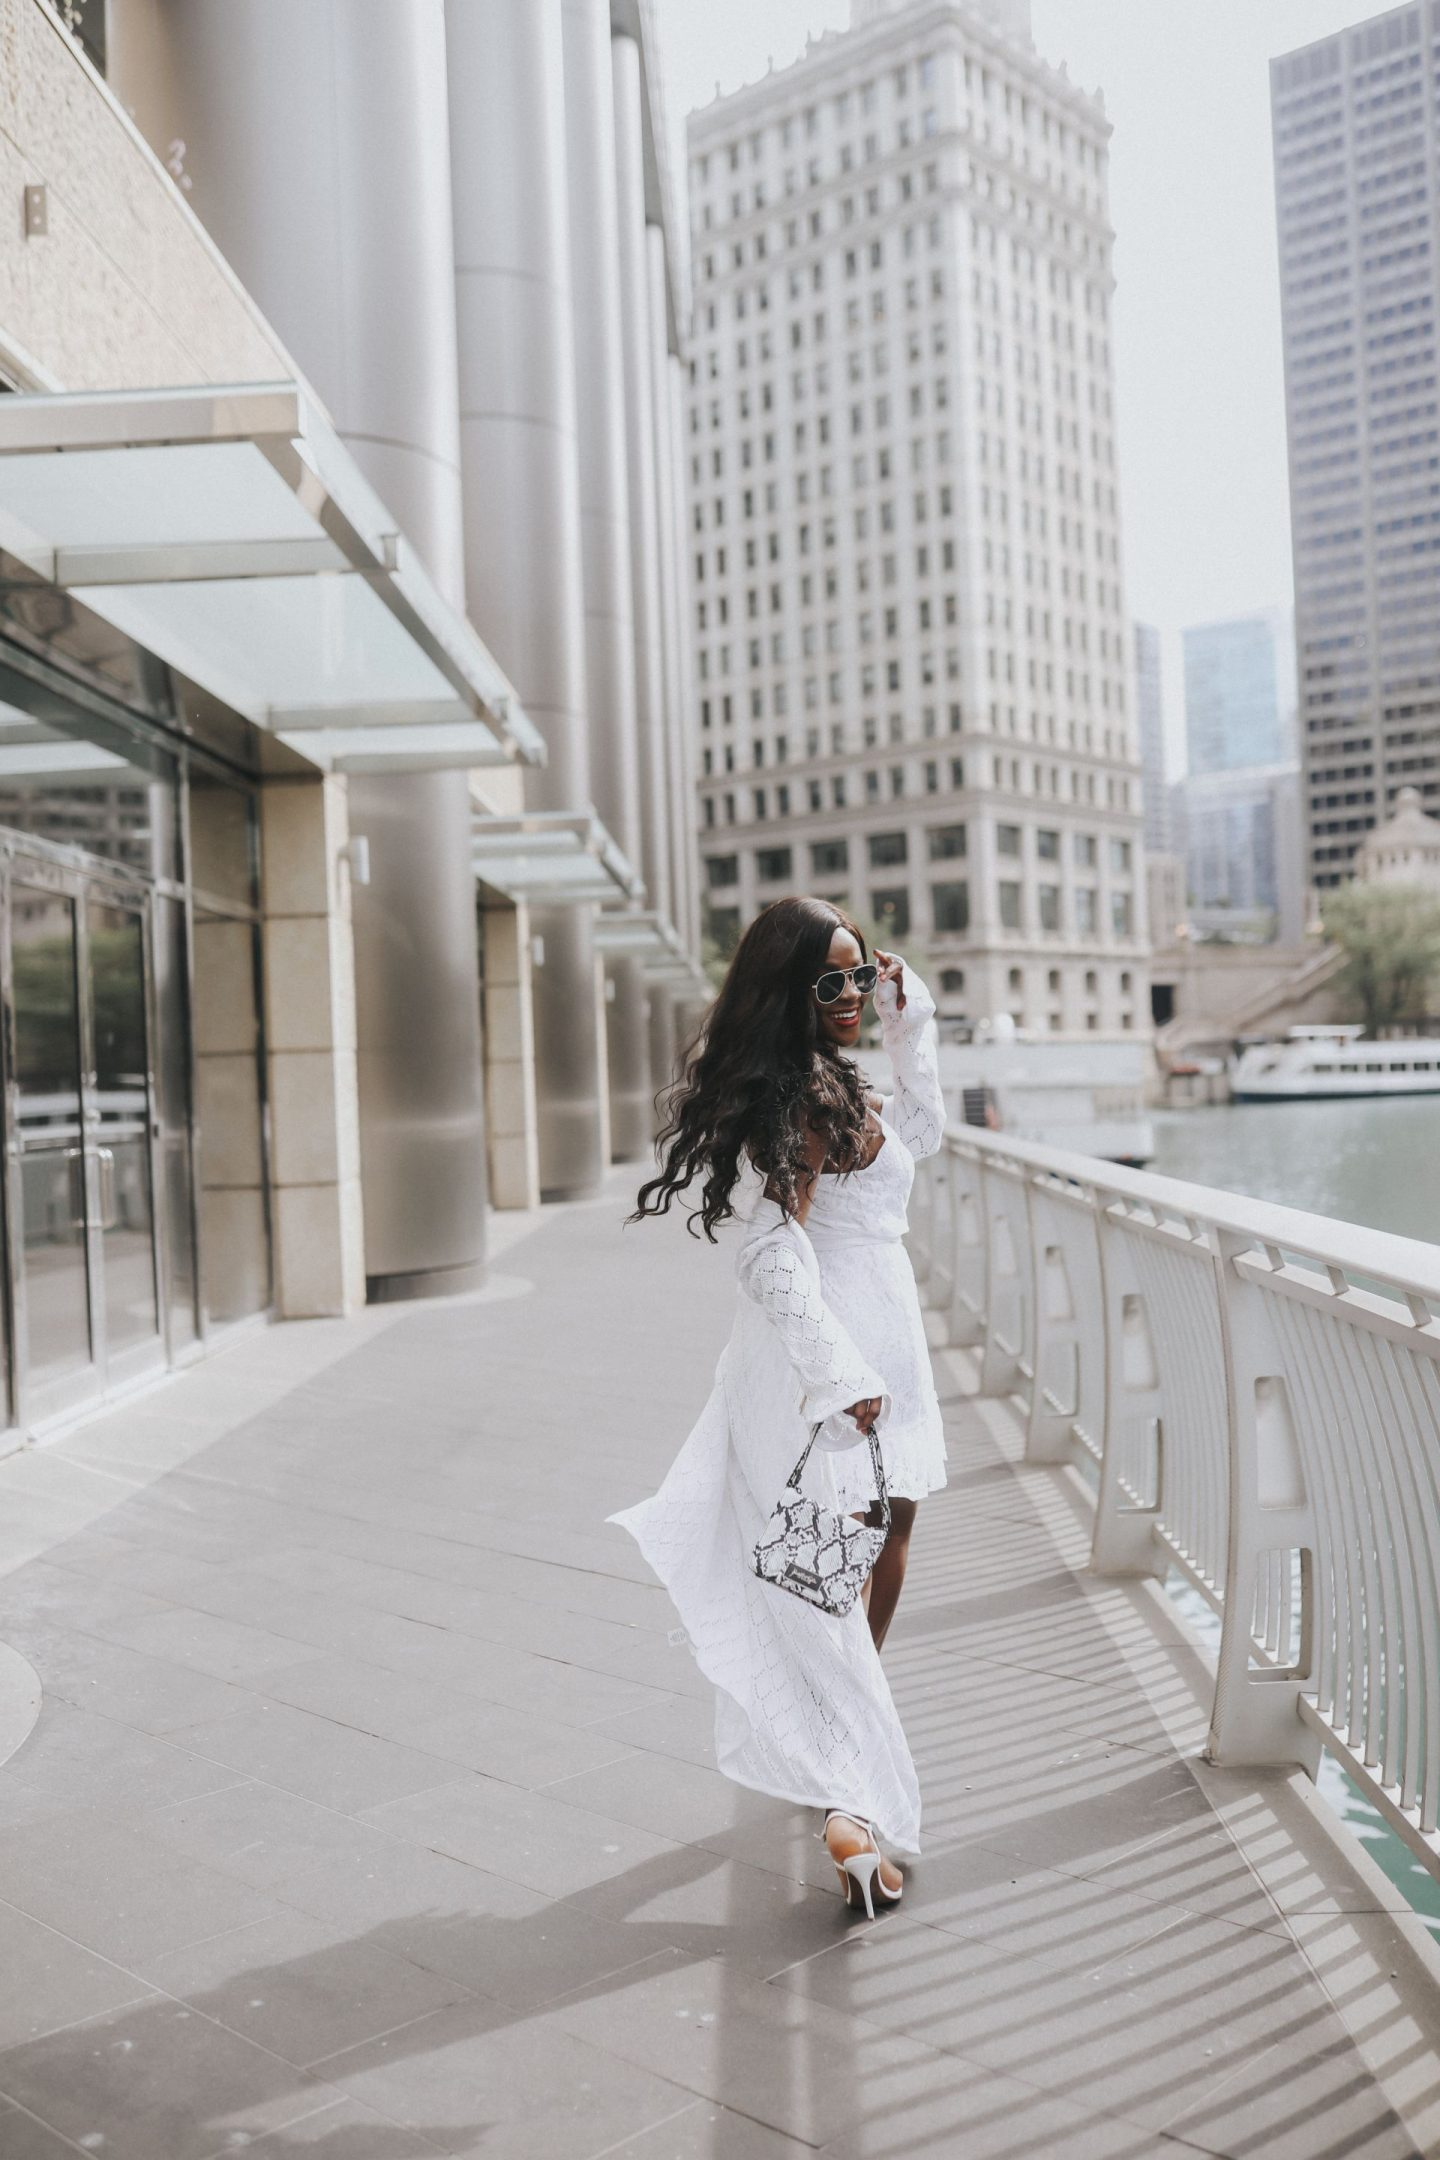 Jenn Ibe, Cranberry Tantrums, how to style a white dress for a boat outing